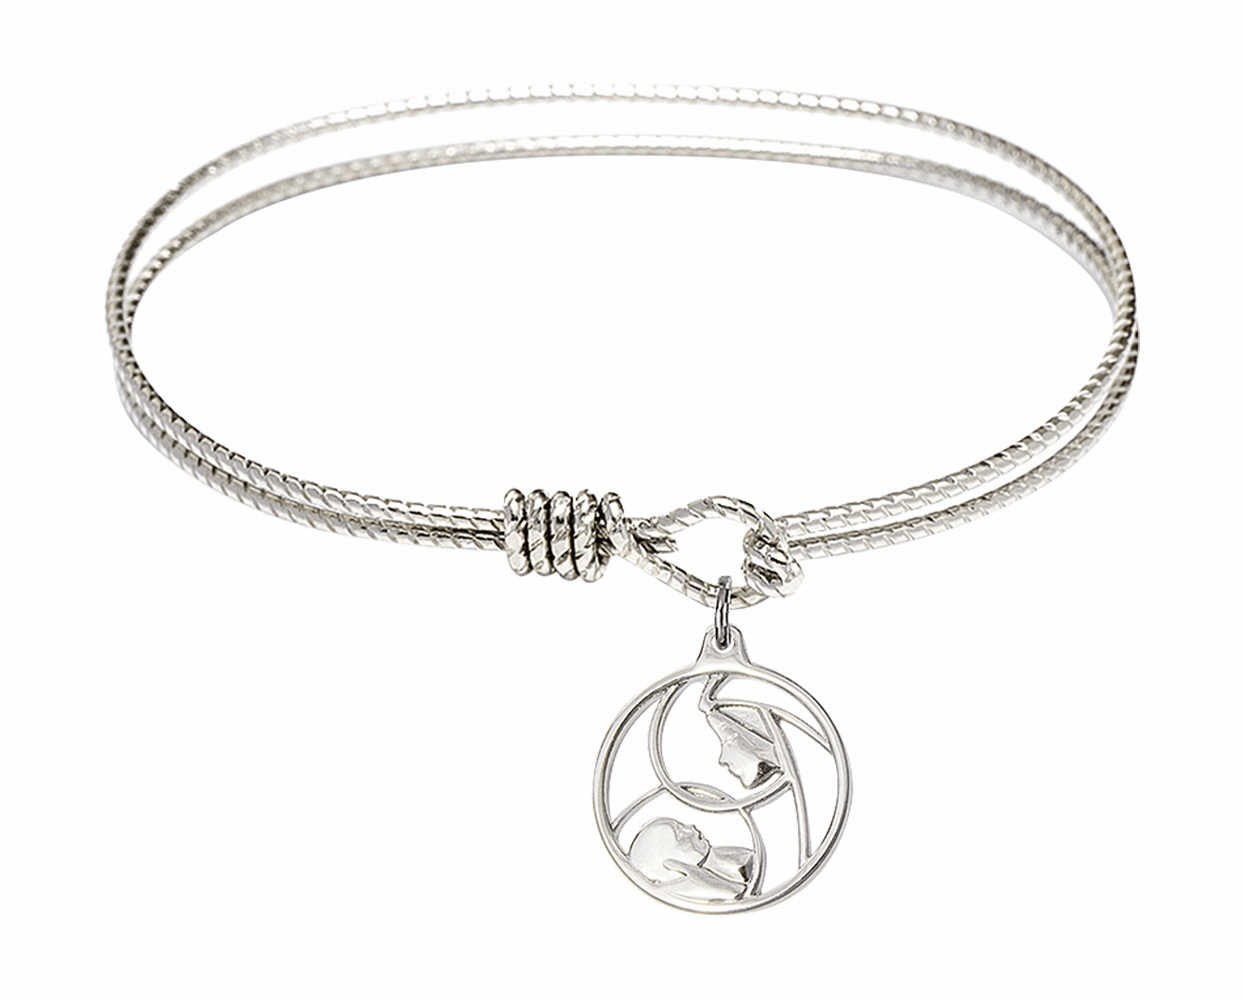 Round Twist Eye Hook Bangle Bracelet w/Madonna and Child Sterling Silver Charm by Bliss Mfg